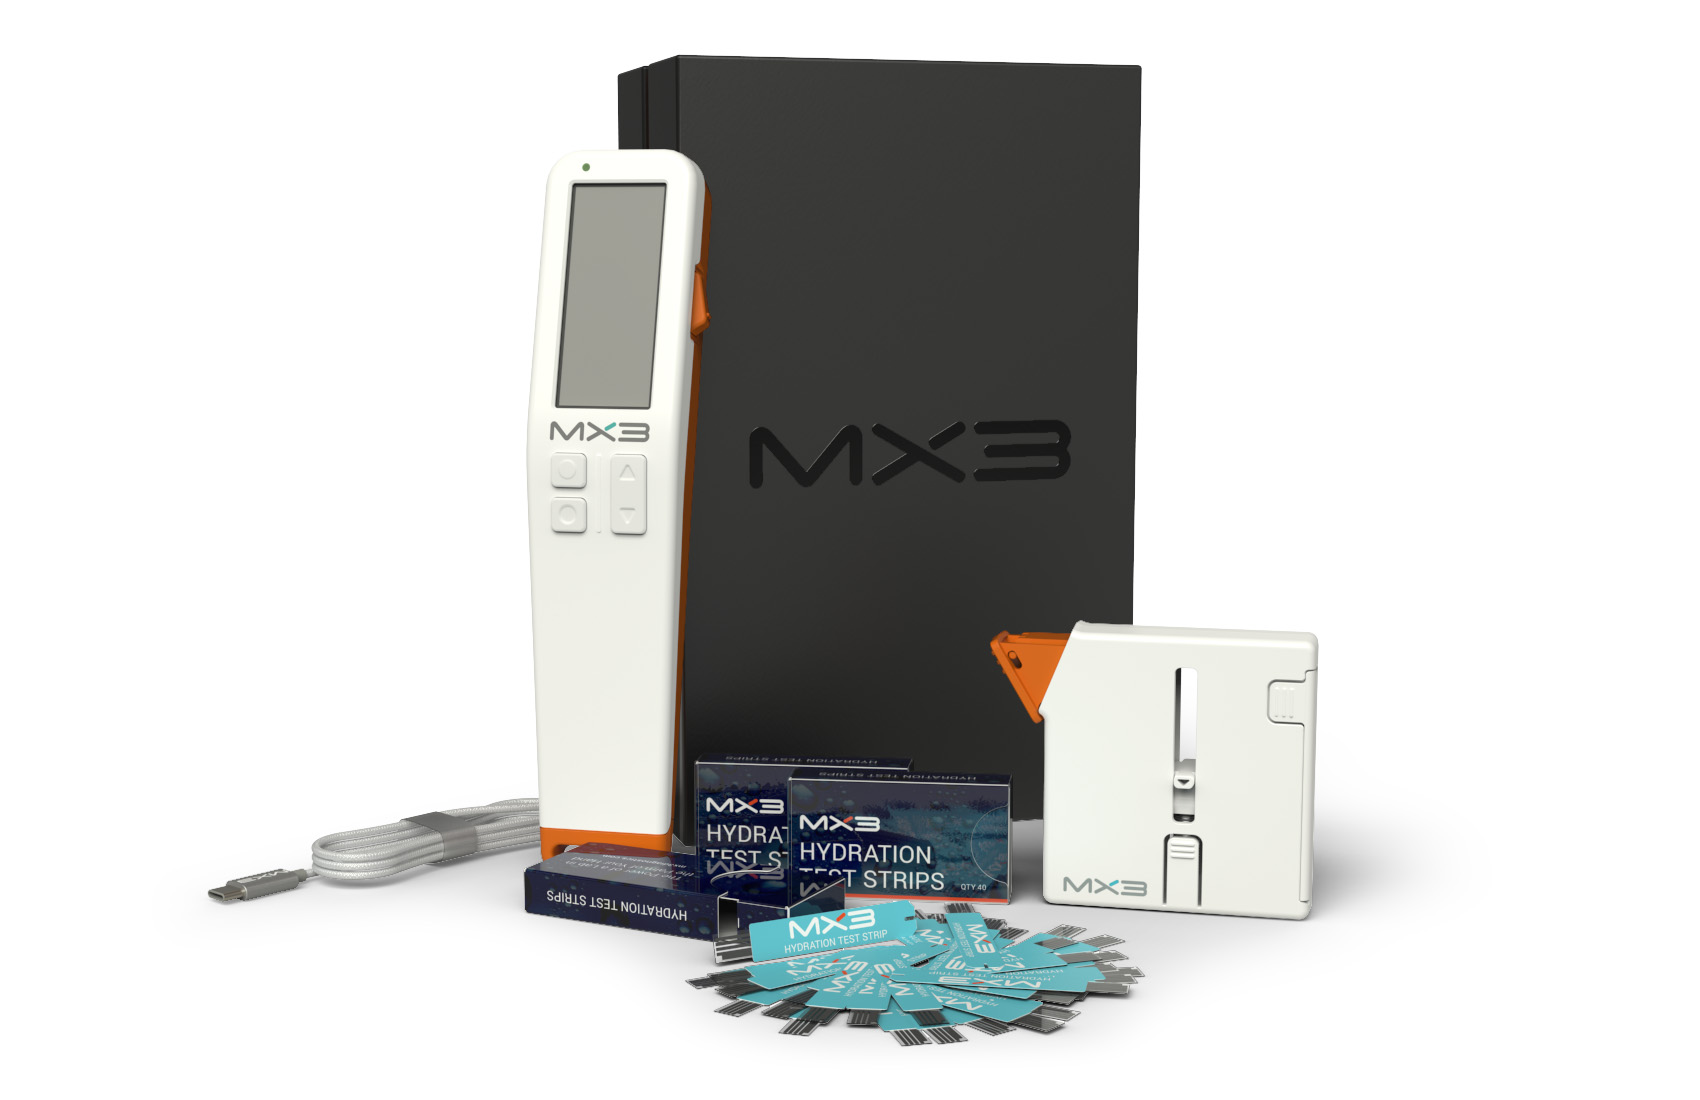 MX3 Hydration Testing System, Pro Version